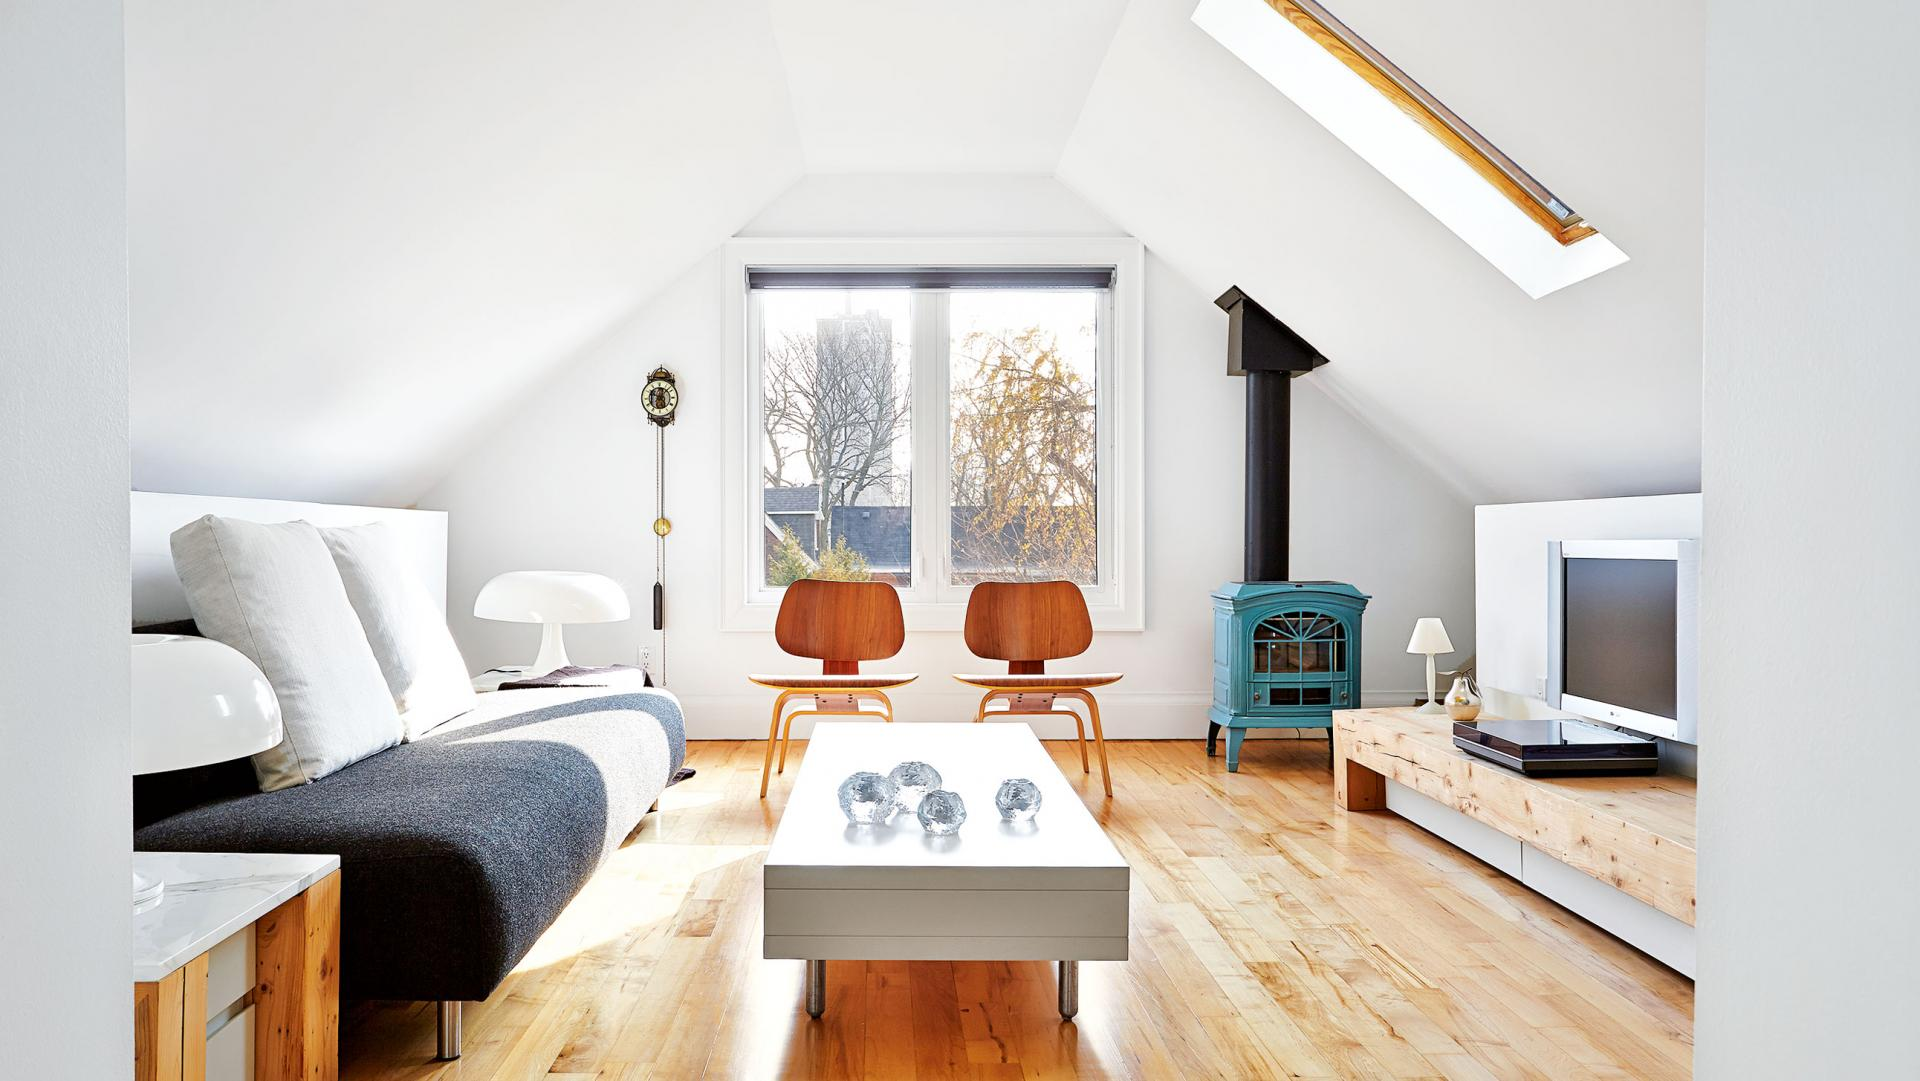 39 attic living rooms that really are the best adorable - Small attic room design ideas ...